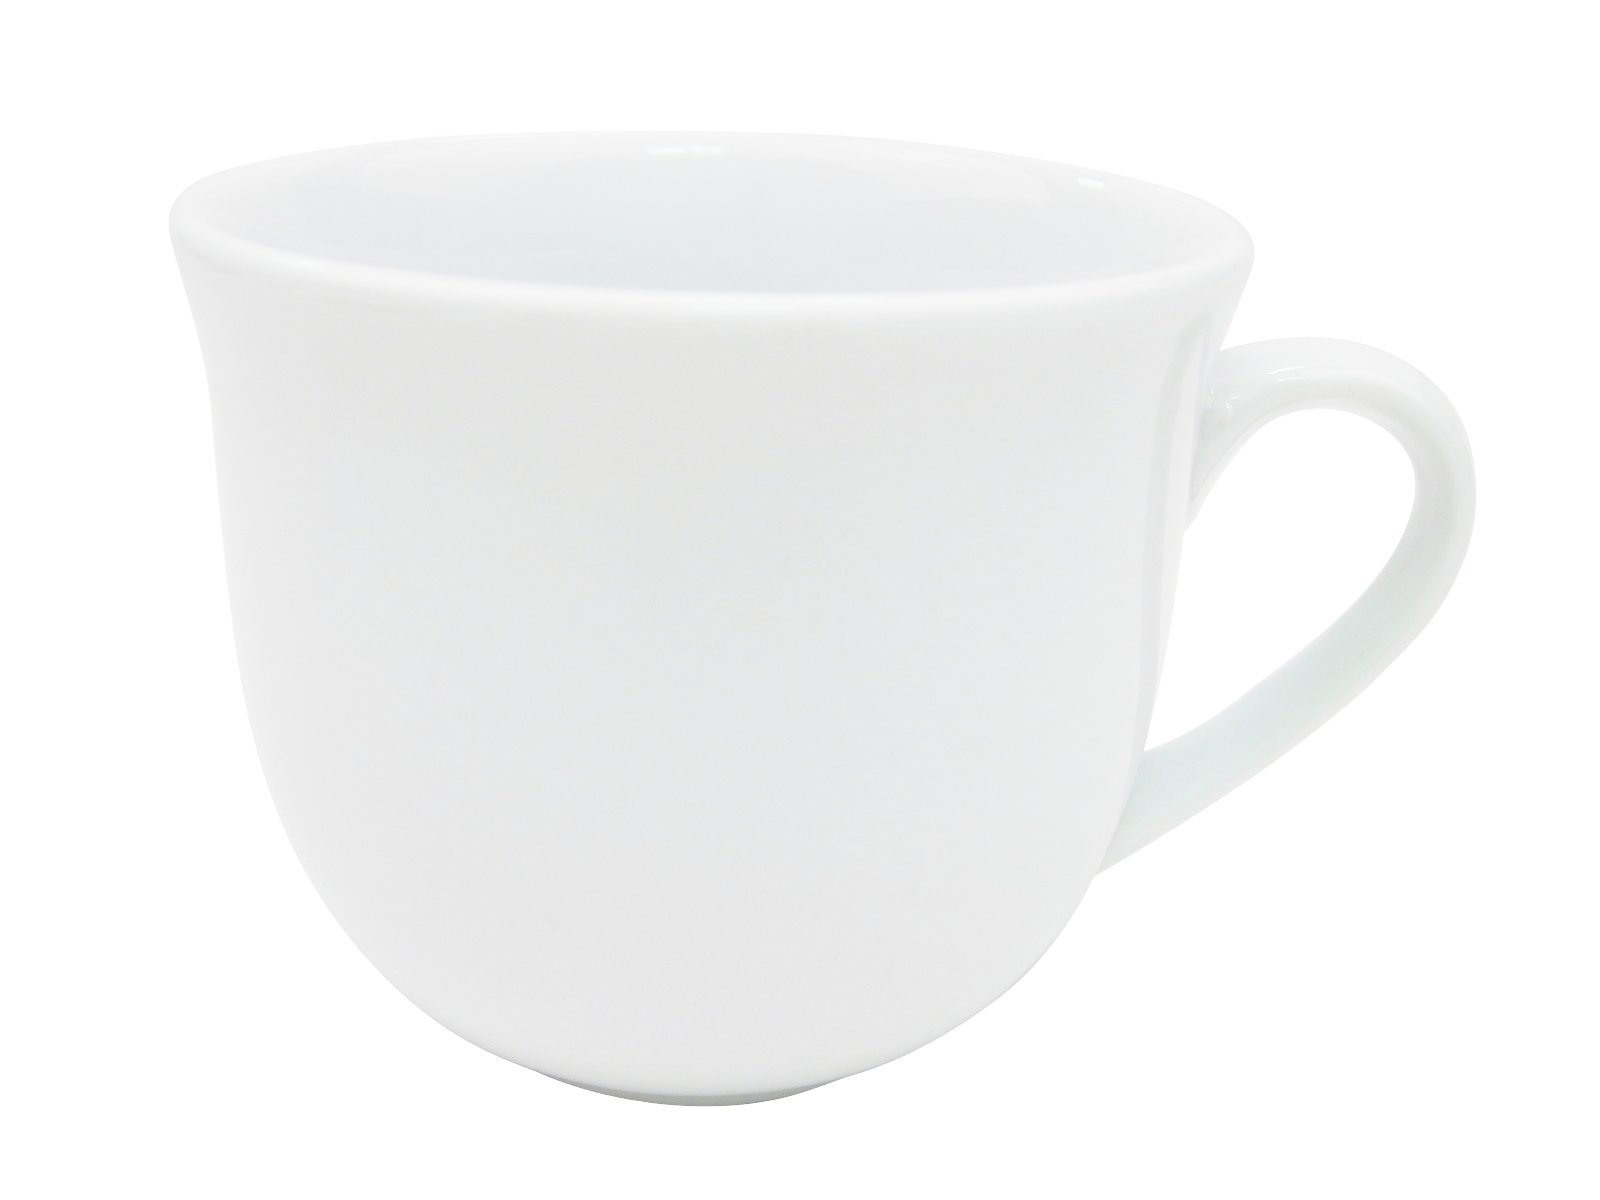 CAC China RCN-1-U Clinton Rolled Edge 3-1/2-Inch Super White Porcelain Cup, 8-Ounce, Box of 36